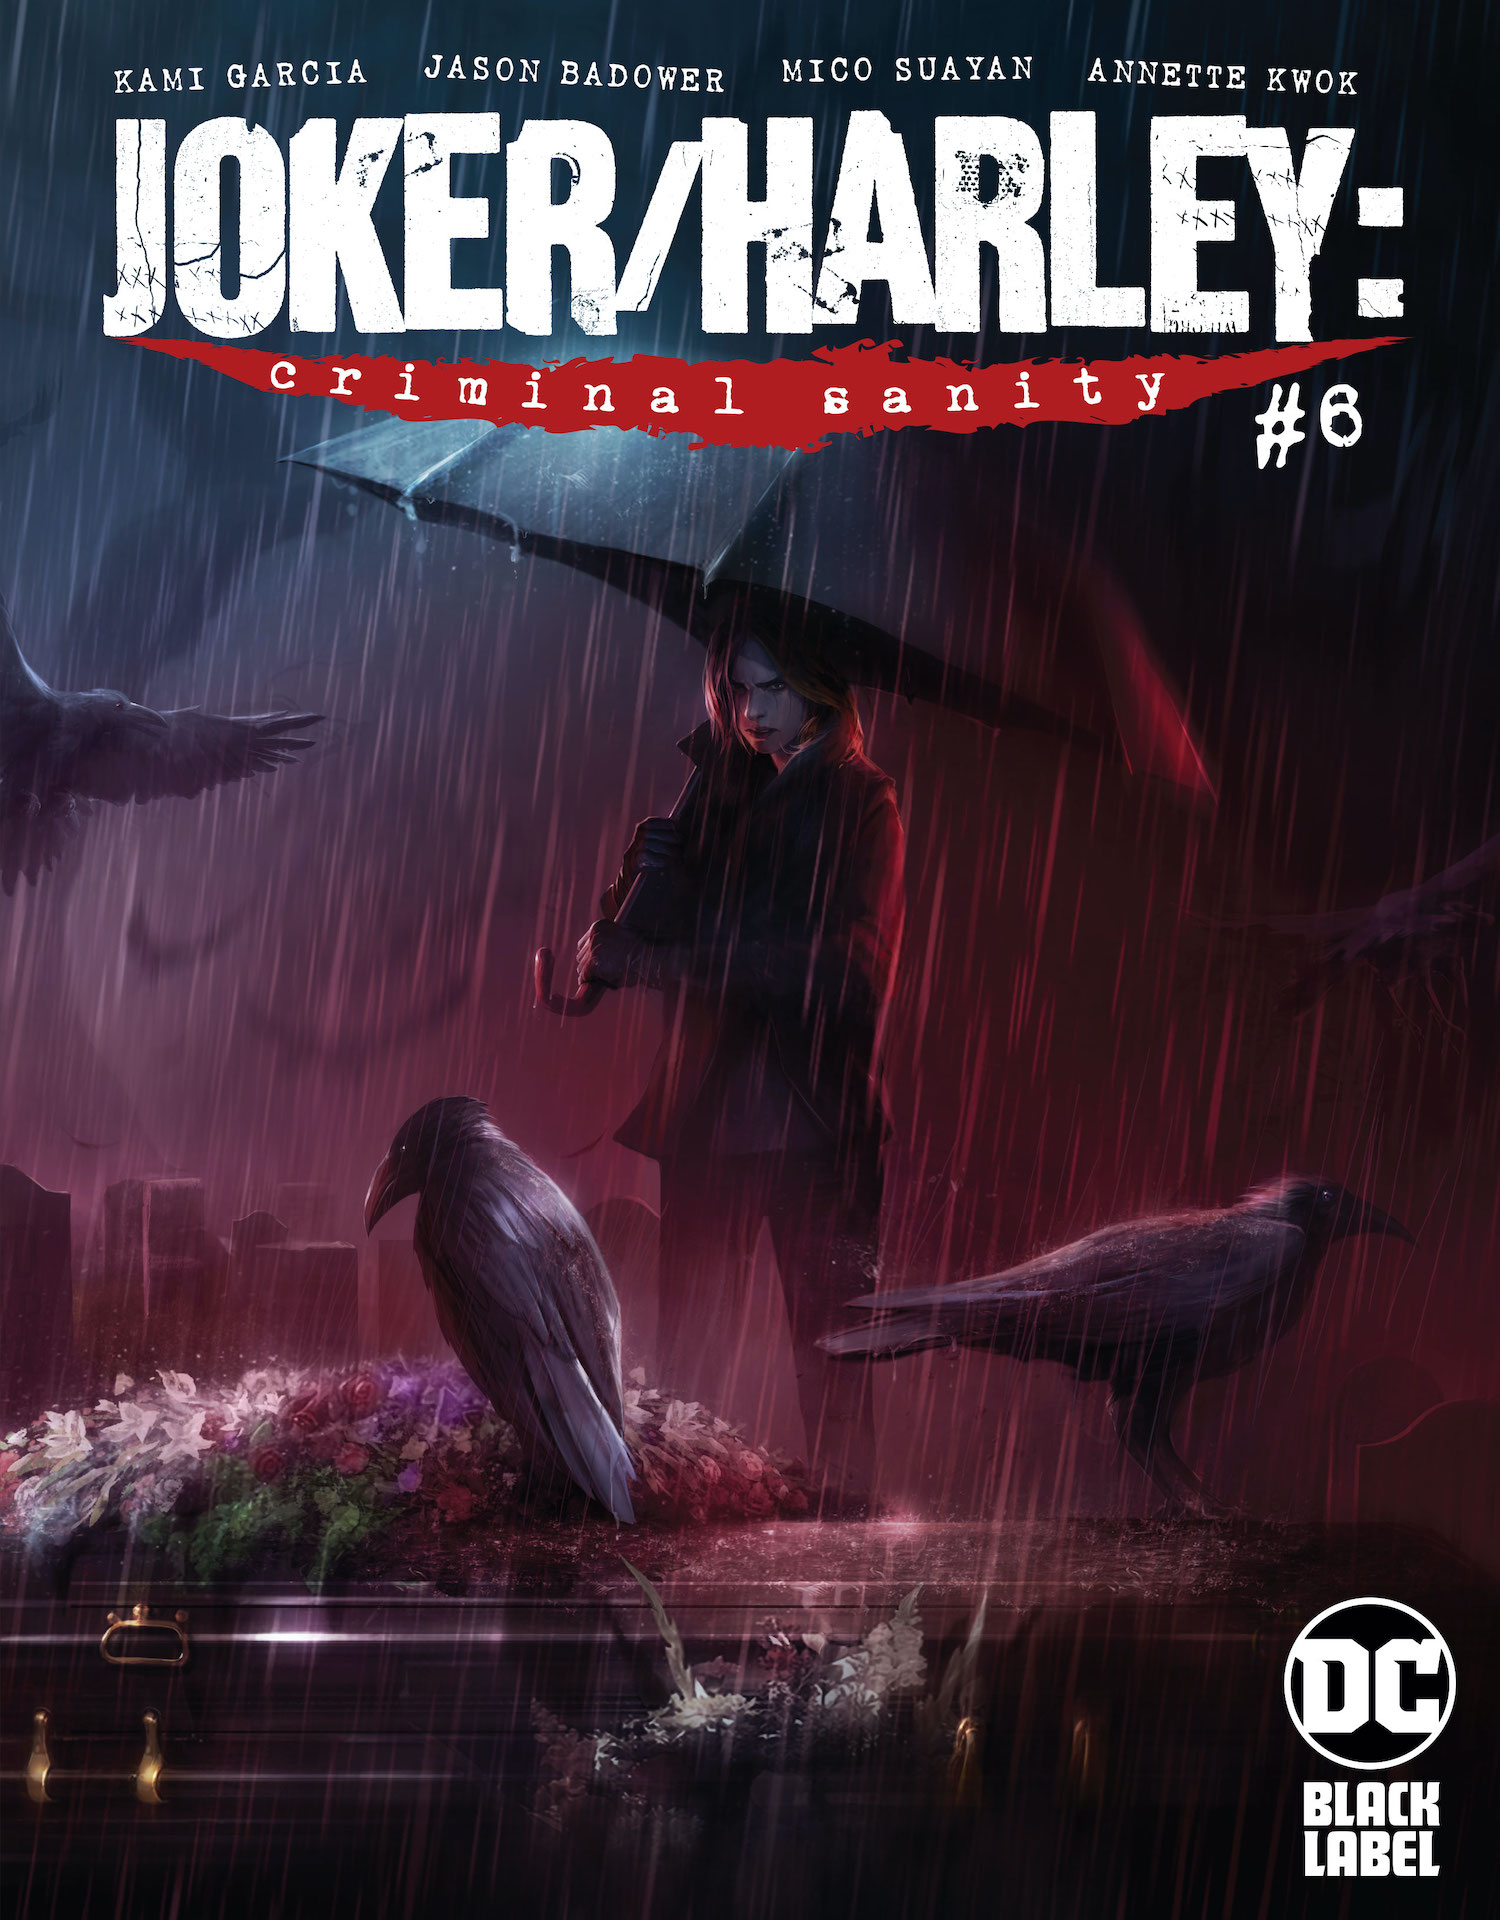 DC Preview: Joker/Harley: Criminal Sanity #6